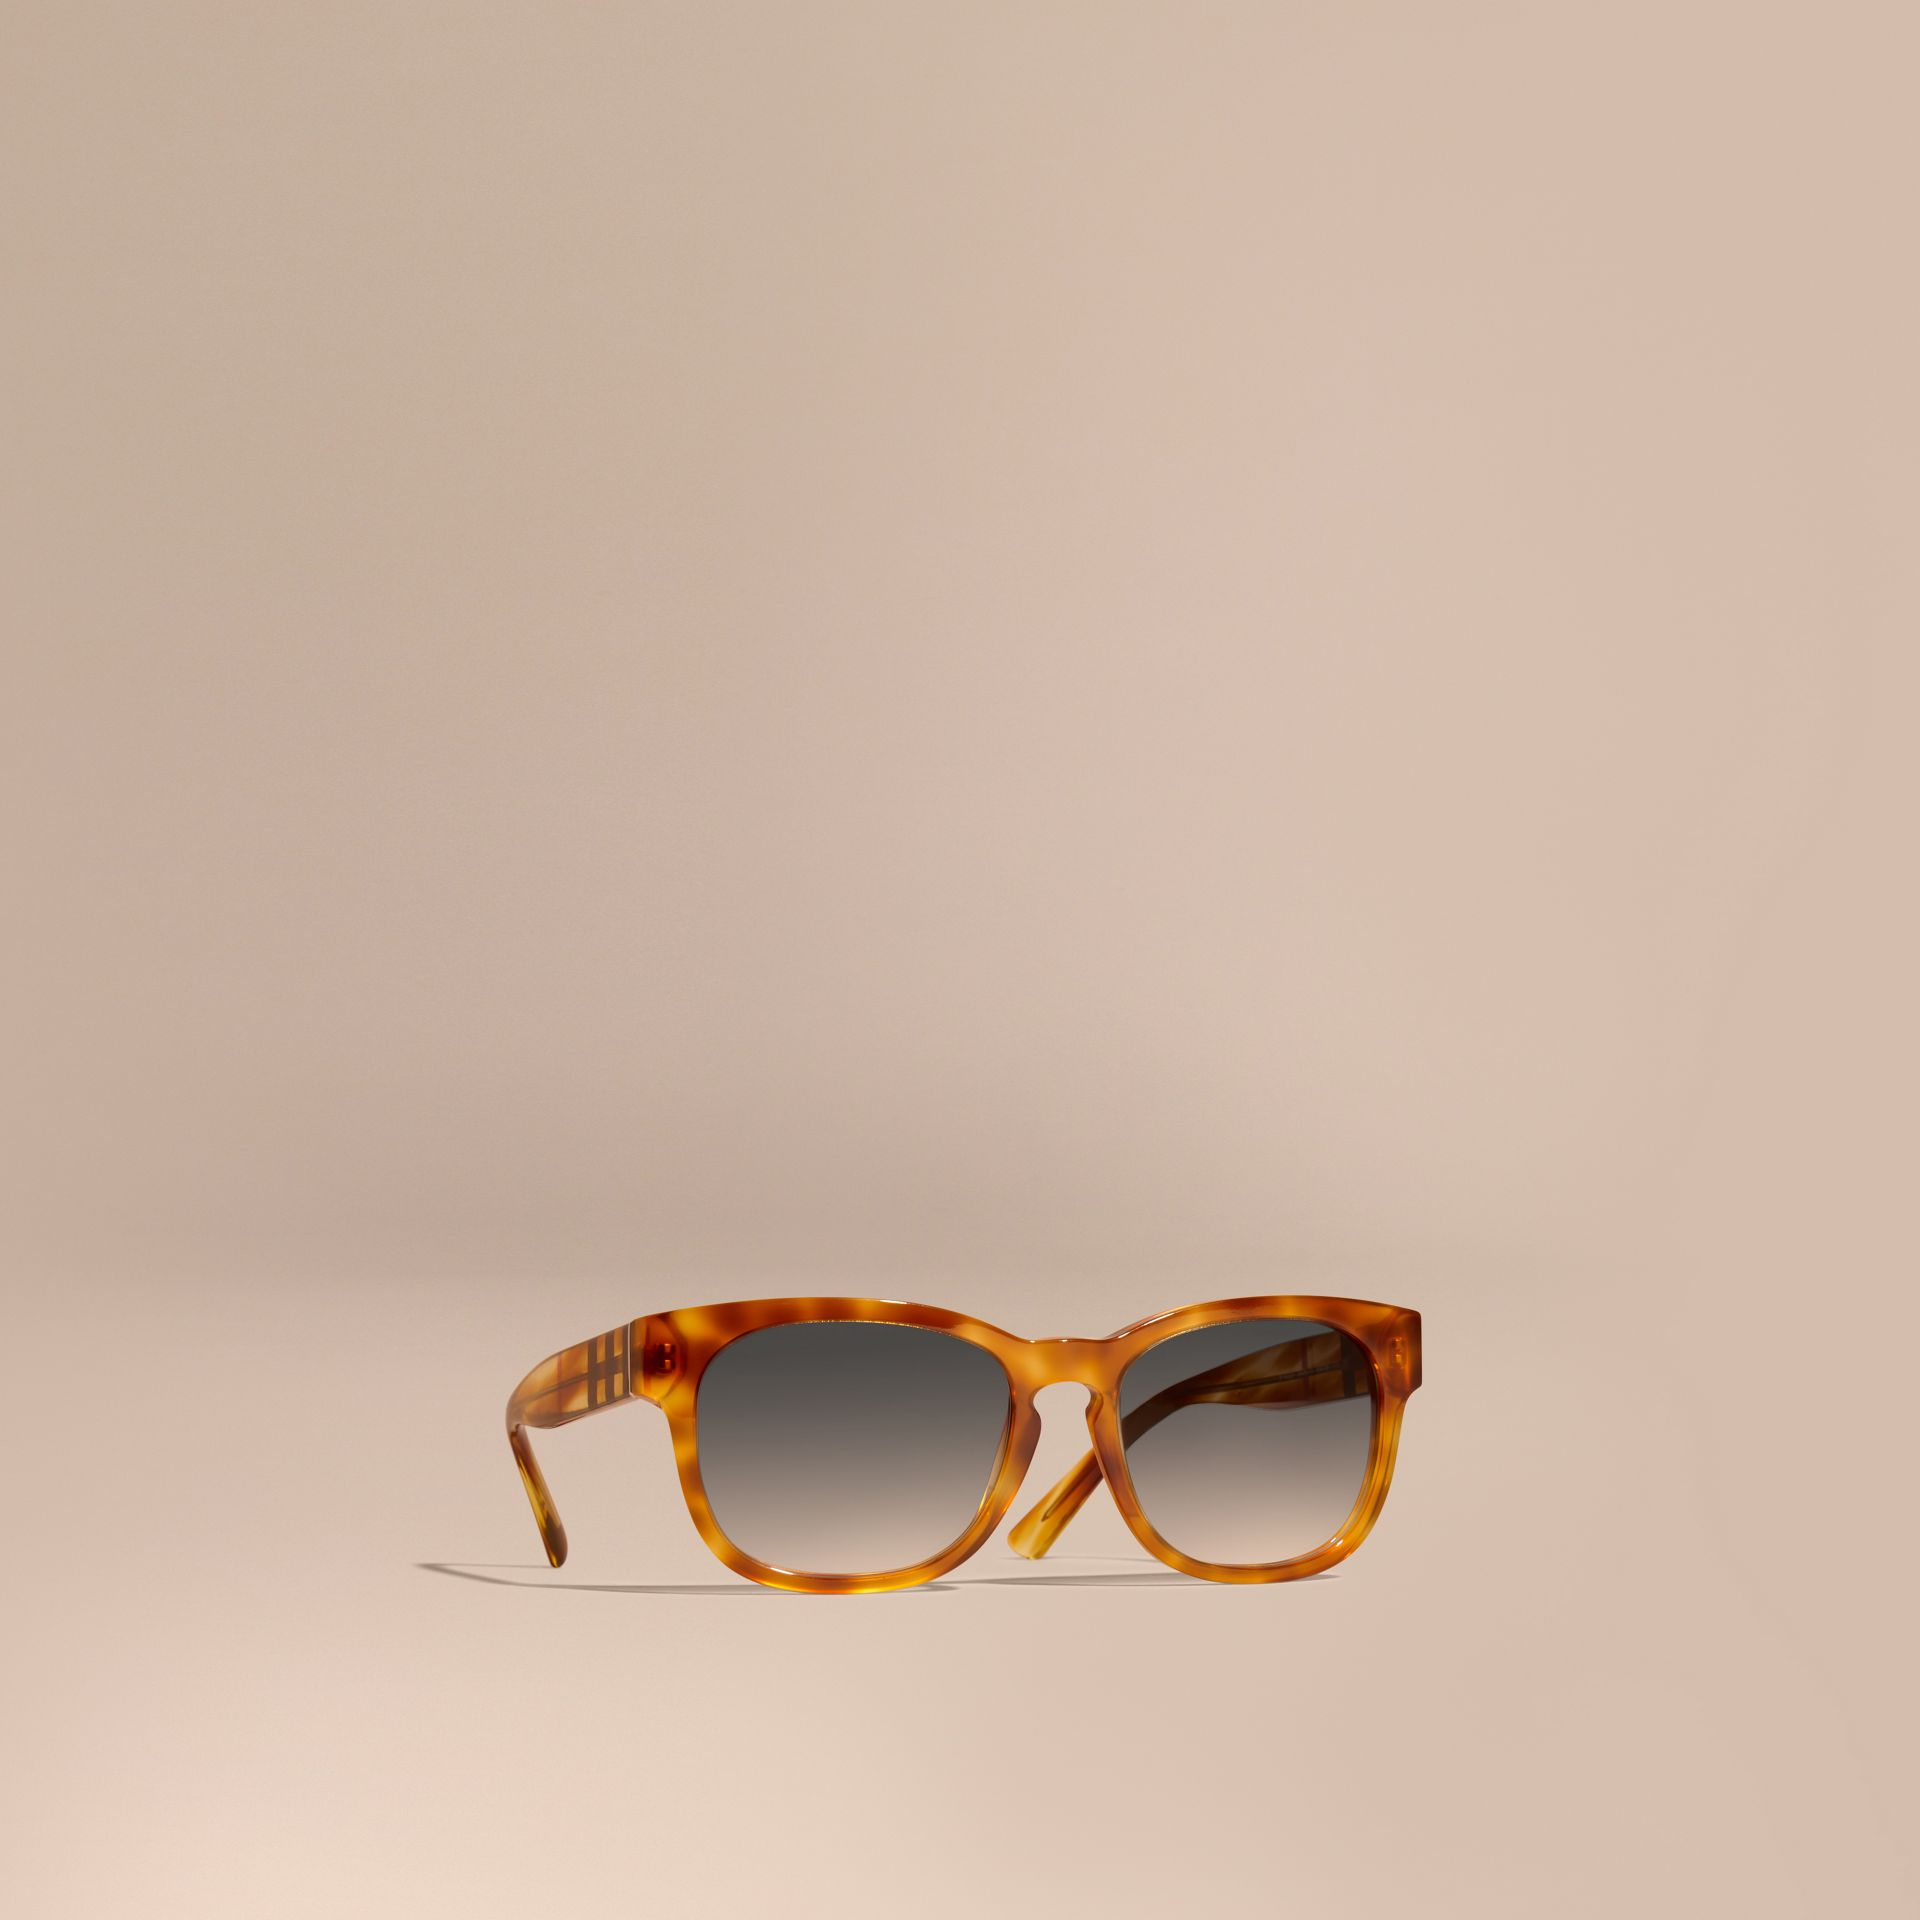 Light russet brown Check Detail Square Frame Sunglasses Light Russet Brown - gallery image 1